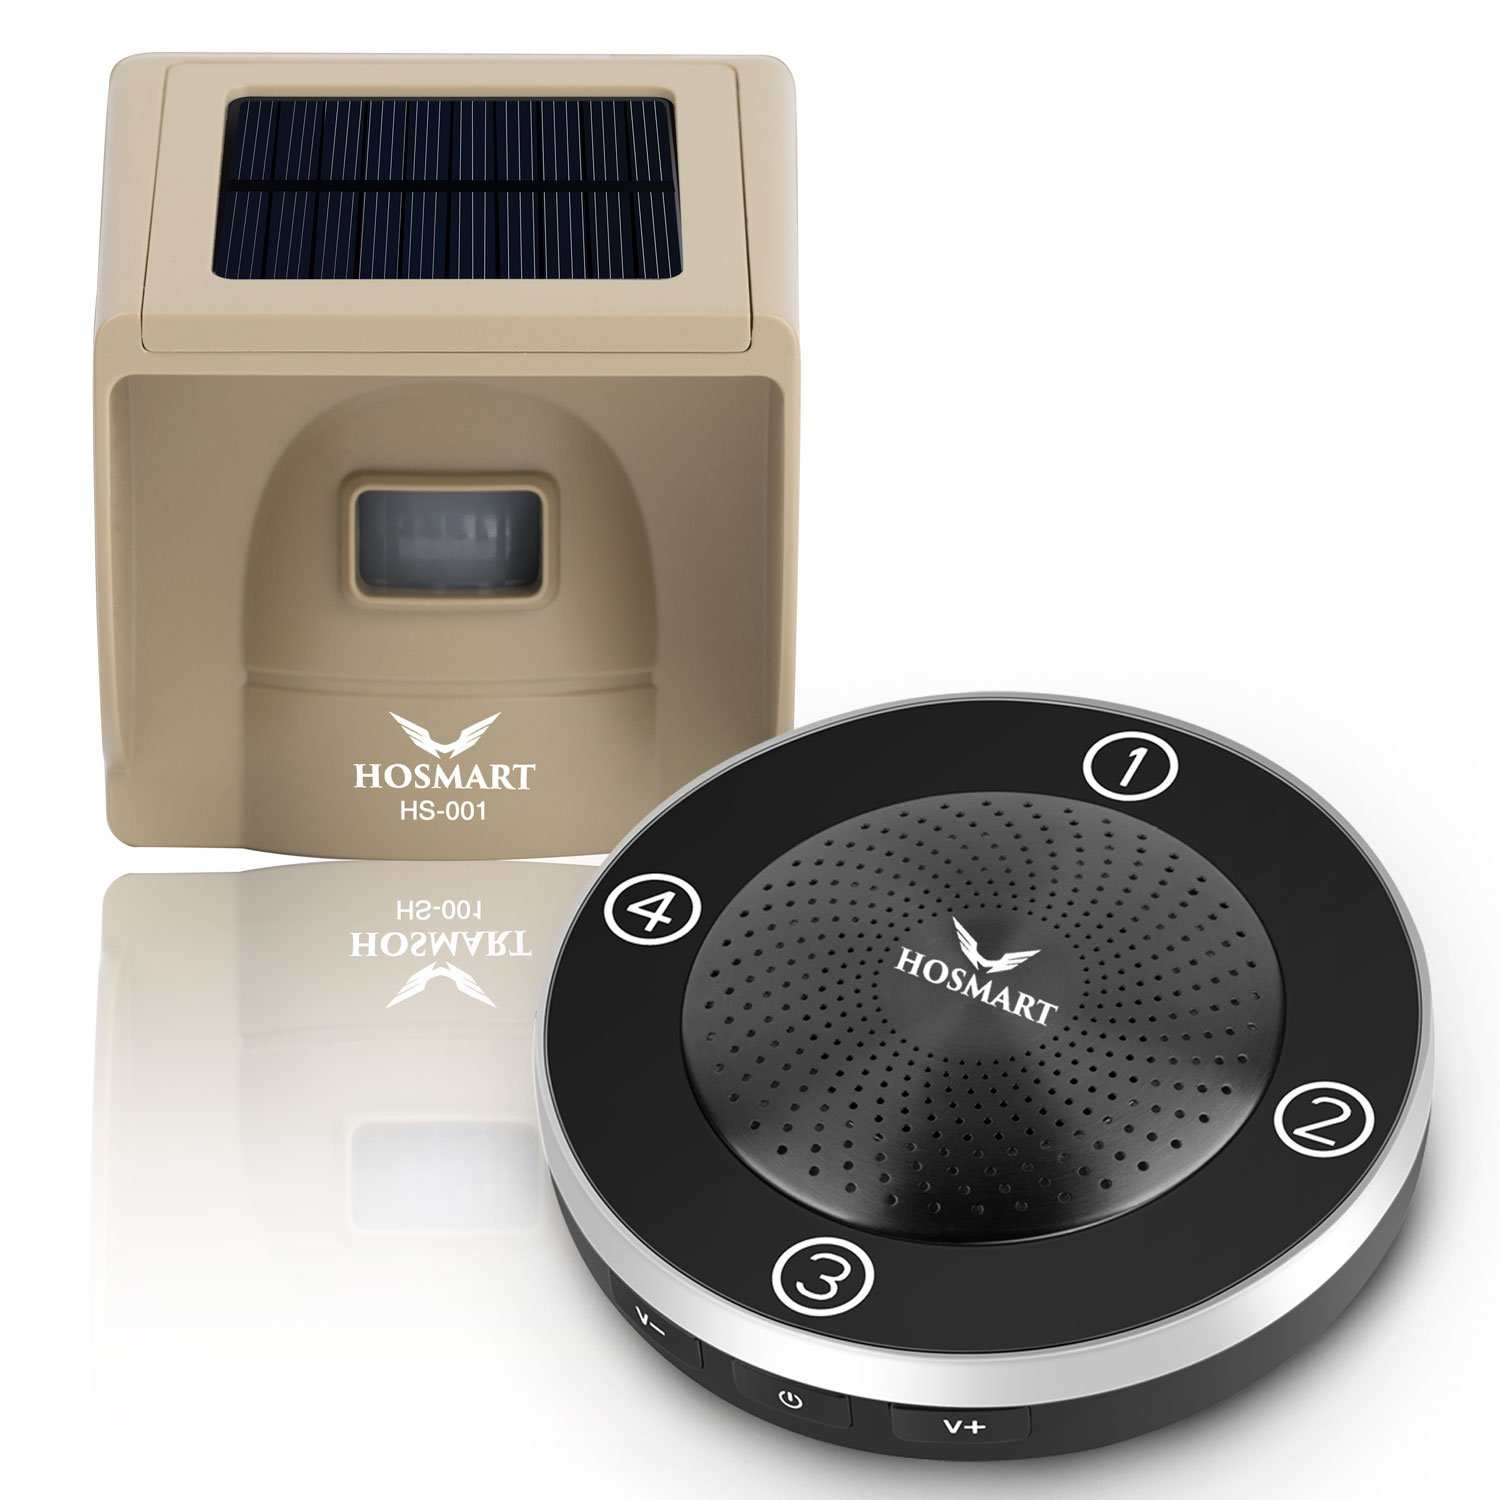 1/4 Mile Long Range Rechargable Solar Driveway Alarm Wireless Sensor System Driveway Sensor Alert System Weatherproof Security Outdoor Motion Sensor & Detector No Need Replace Batteries by Hosmart